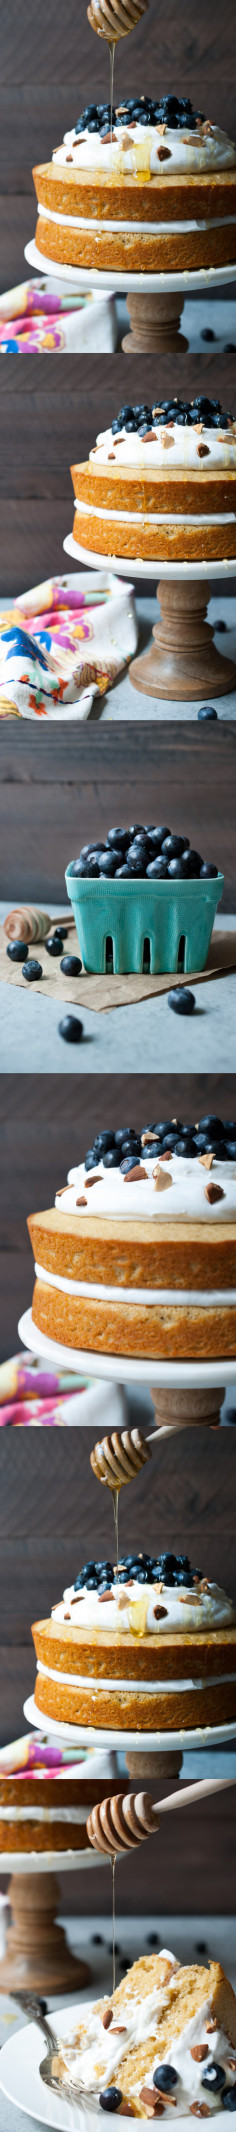 Lemon Blueberry Olive Oil Cake w/ Coconut Whipped Cream | Life is but a Dish